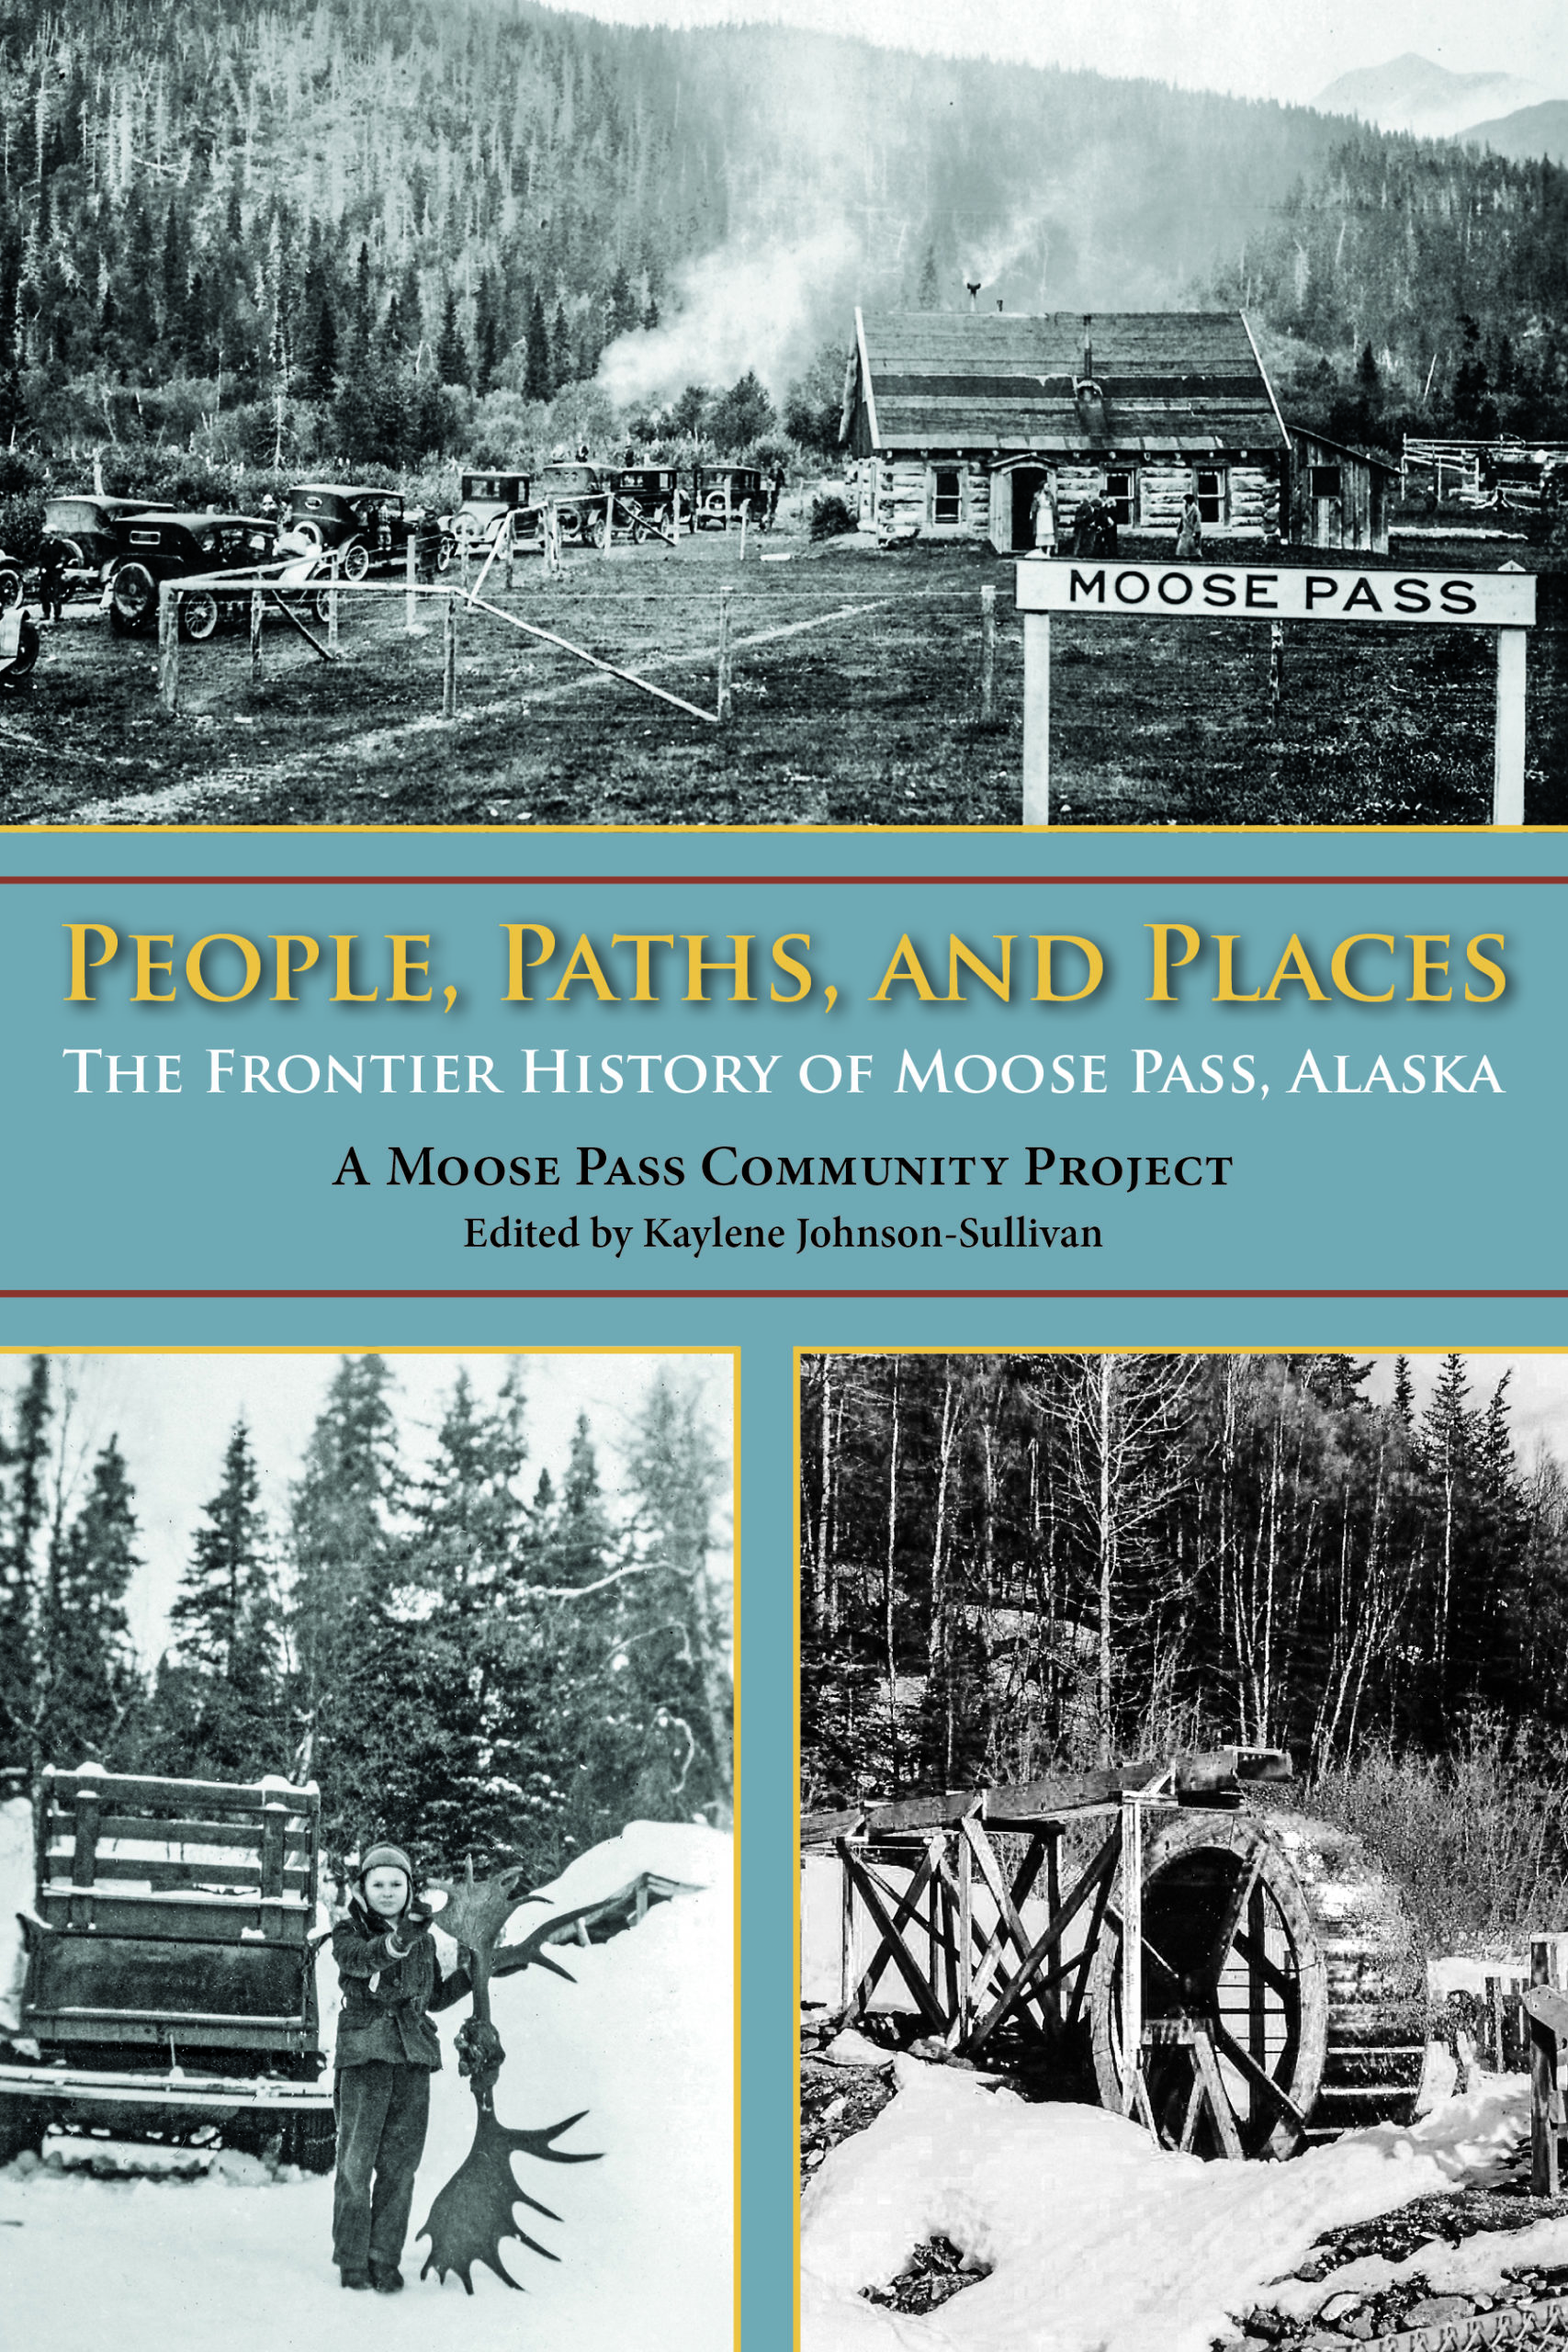 Moose Pass COVER front reprint